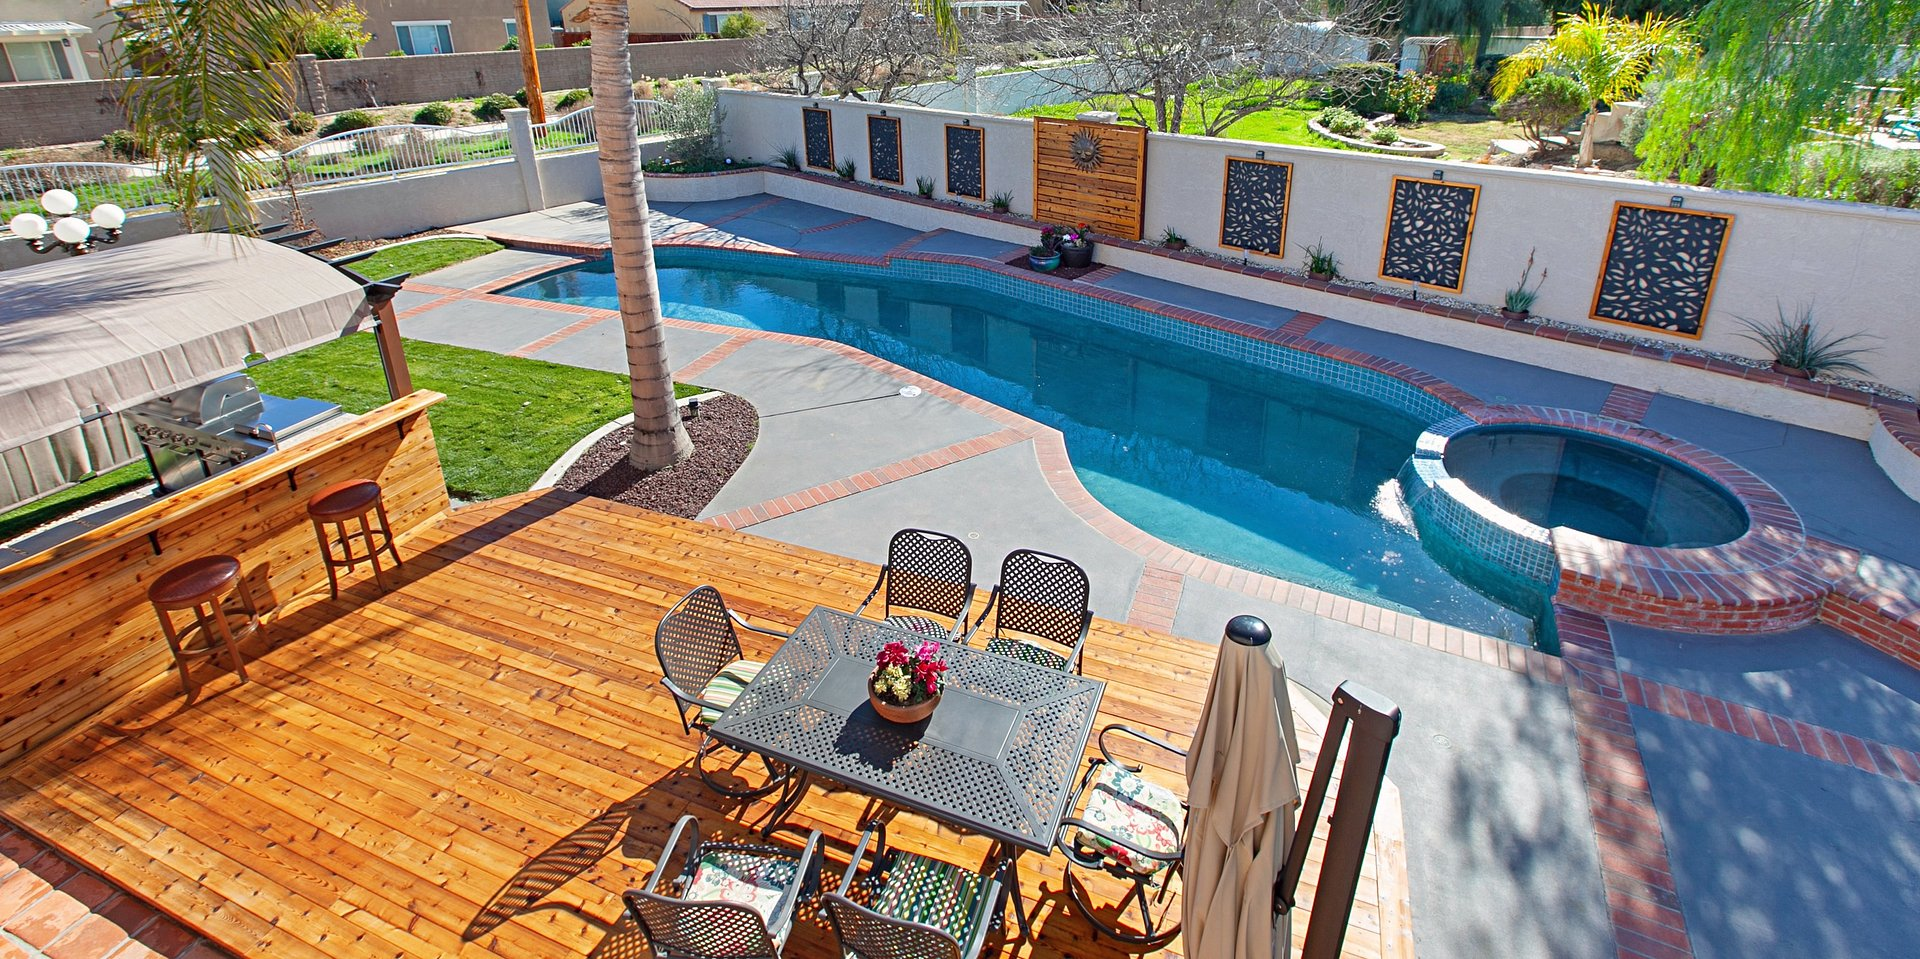 Coldwell Banker Residential Brokerage Lists Menifee Property for $549,000